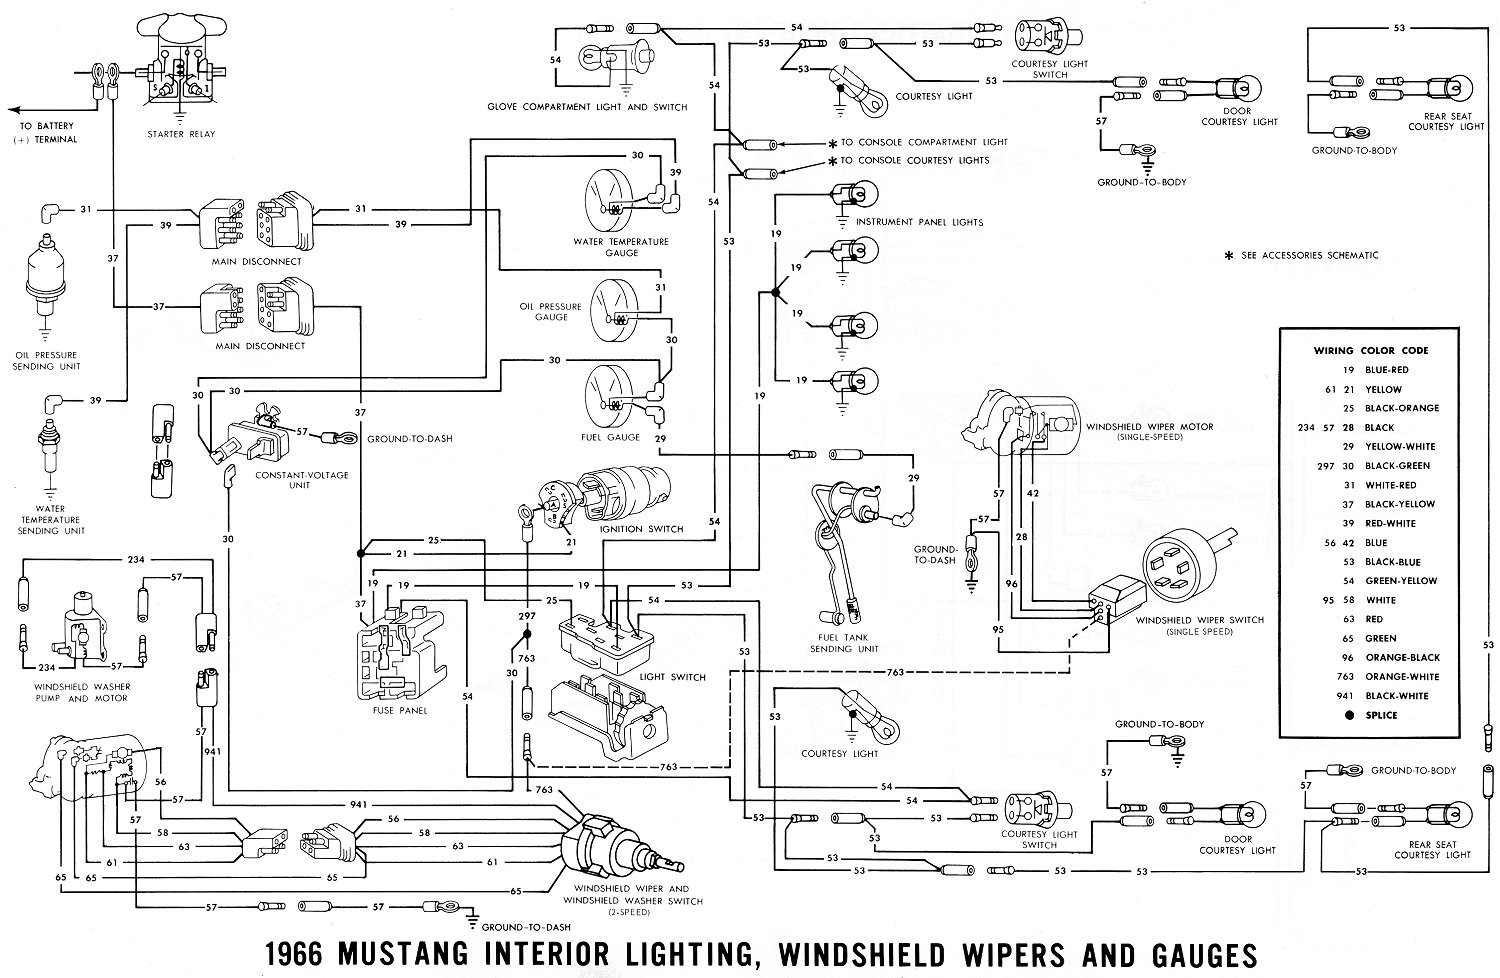 1971 Chevelle Tach Wiring Diagram Free For You 1968 Mustang Dash Cluster Simple Rh 6 Terranut Store 72